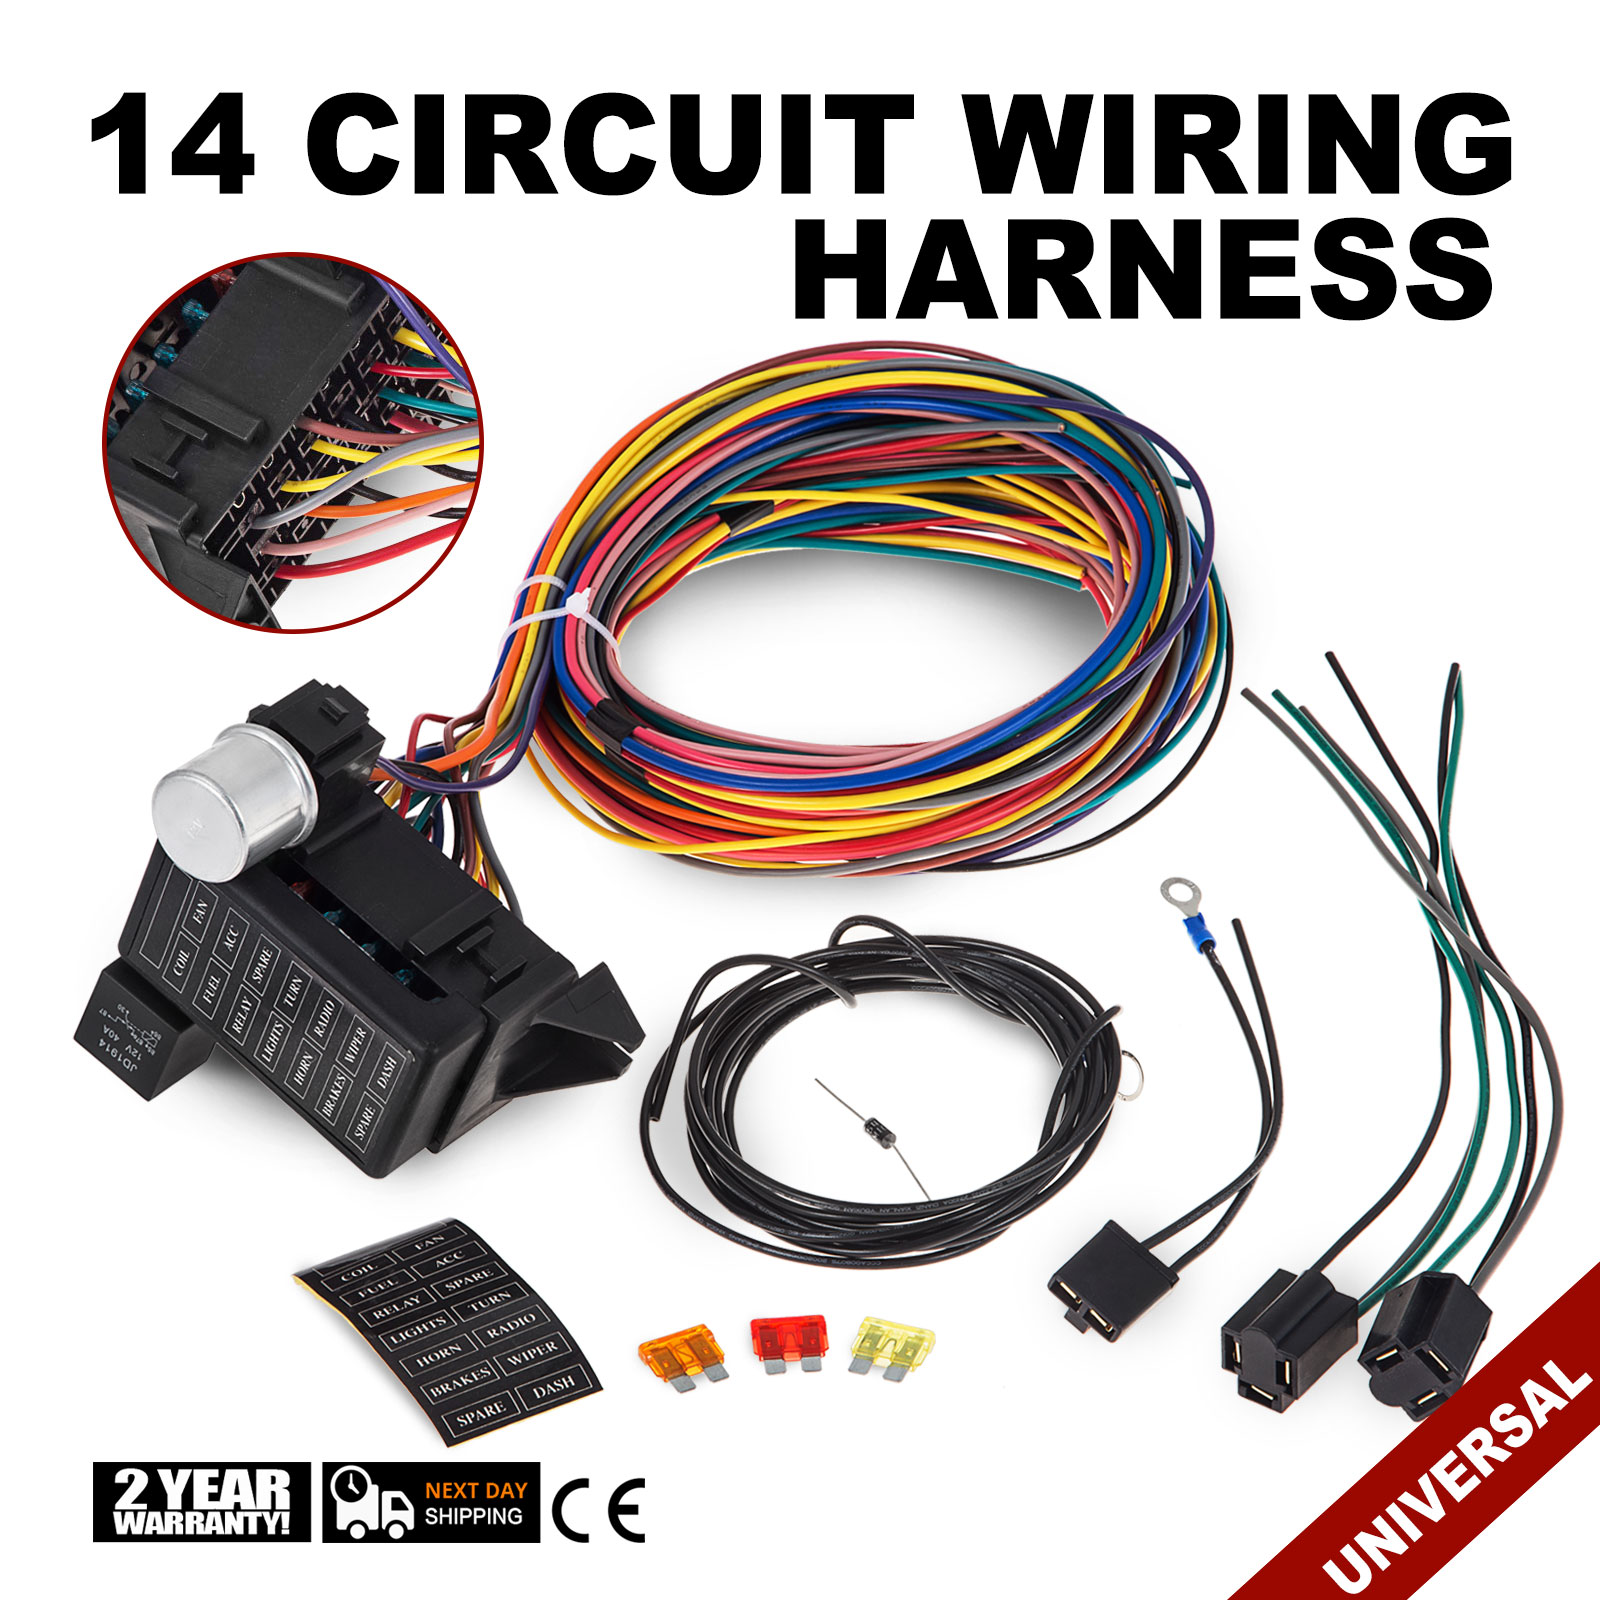 14 Circuit Wiring Harness Library Universal Hot Rod Hq Fuse Wire Muscle Car Street Rat Xl Us 871248708252